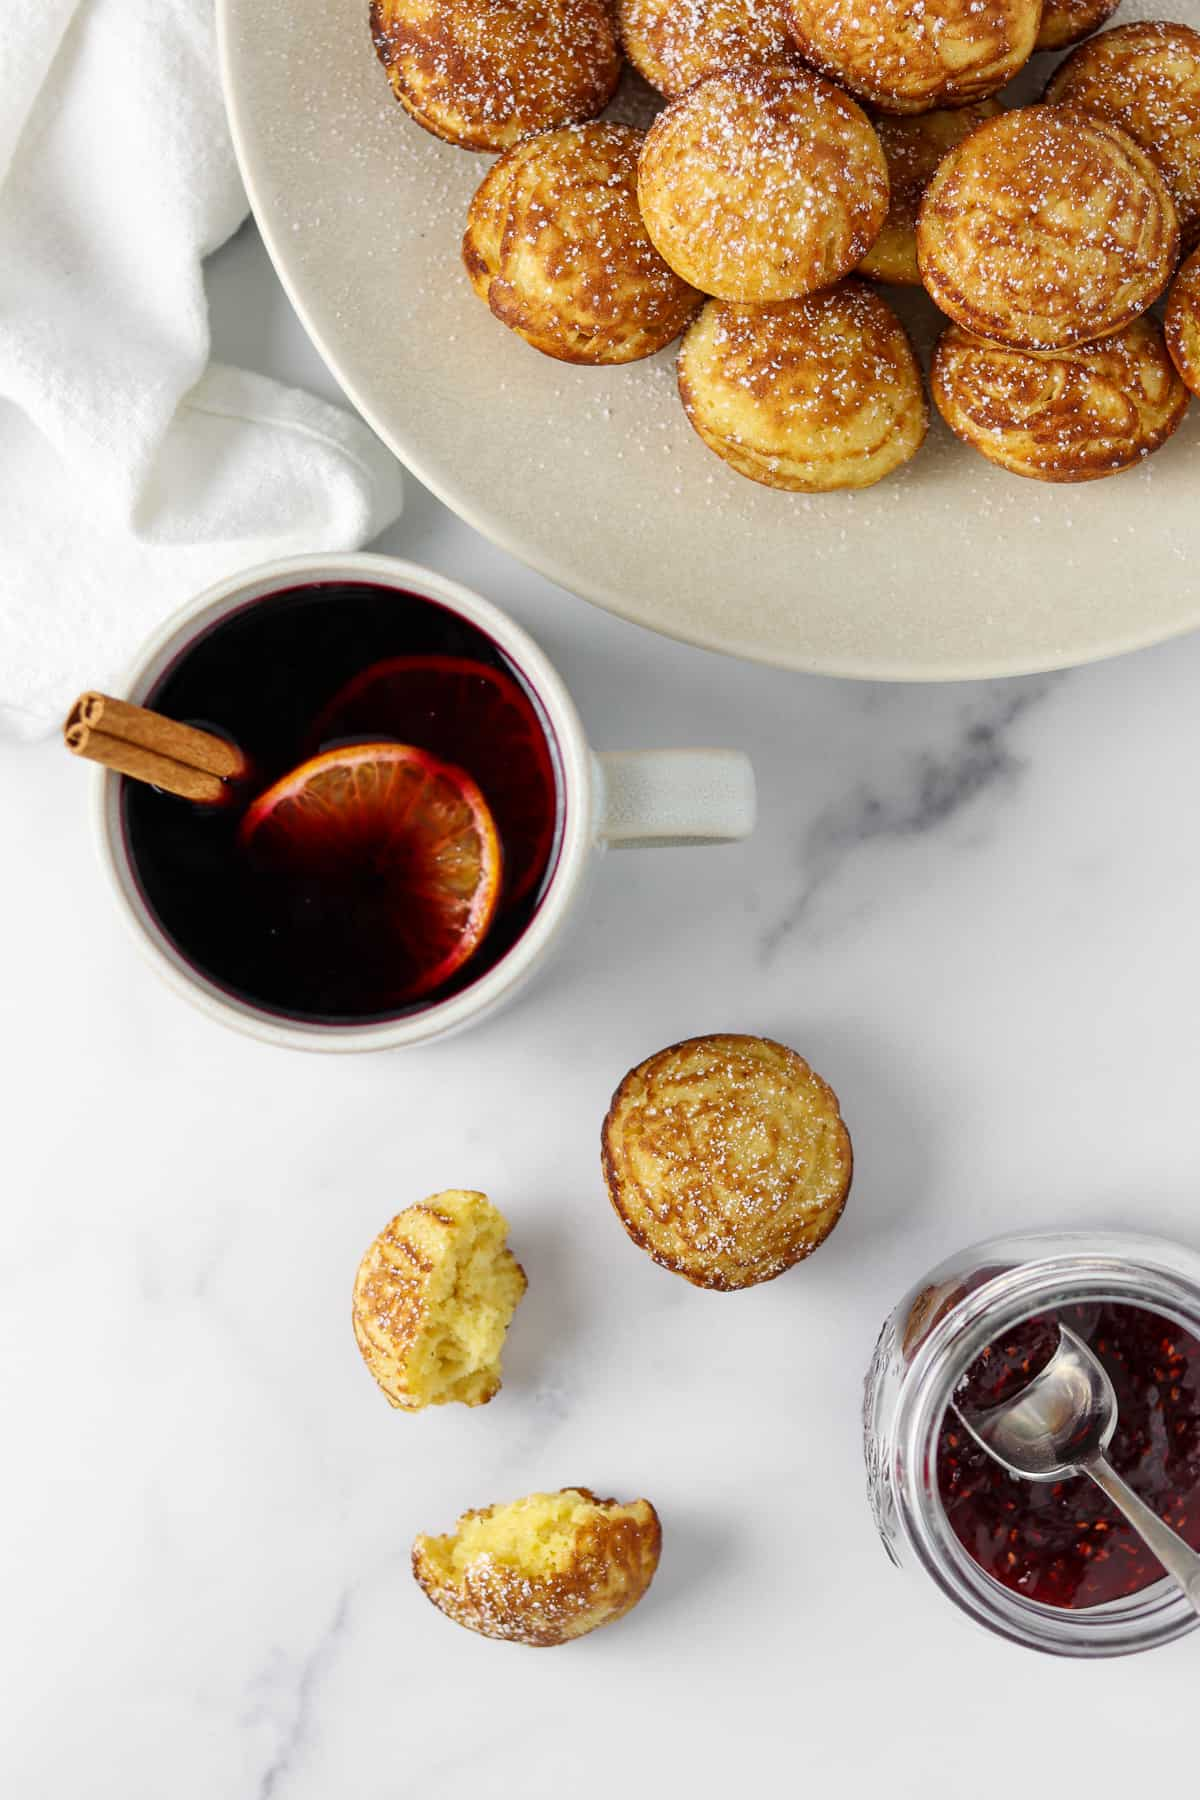 Æbleskivers, jam and mulled wine on a marble surface.